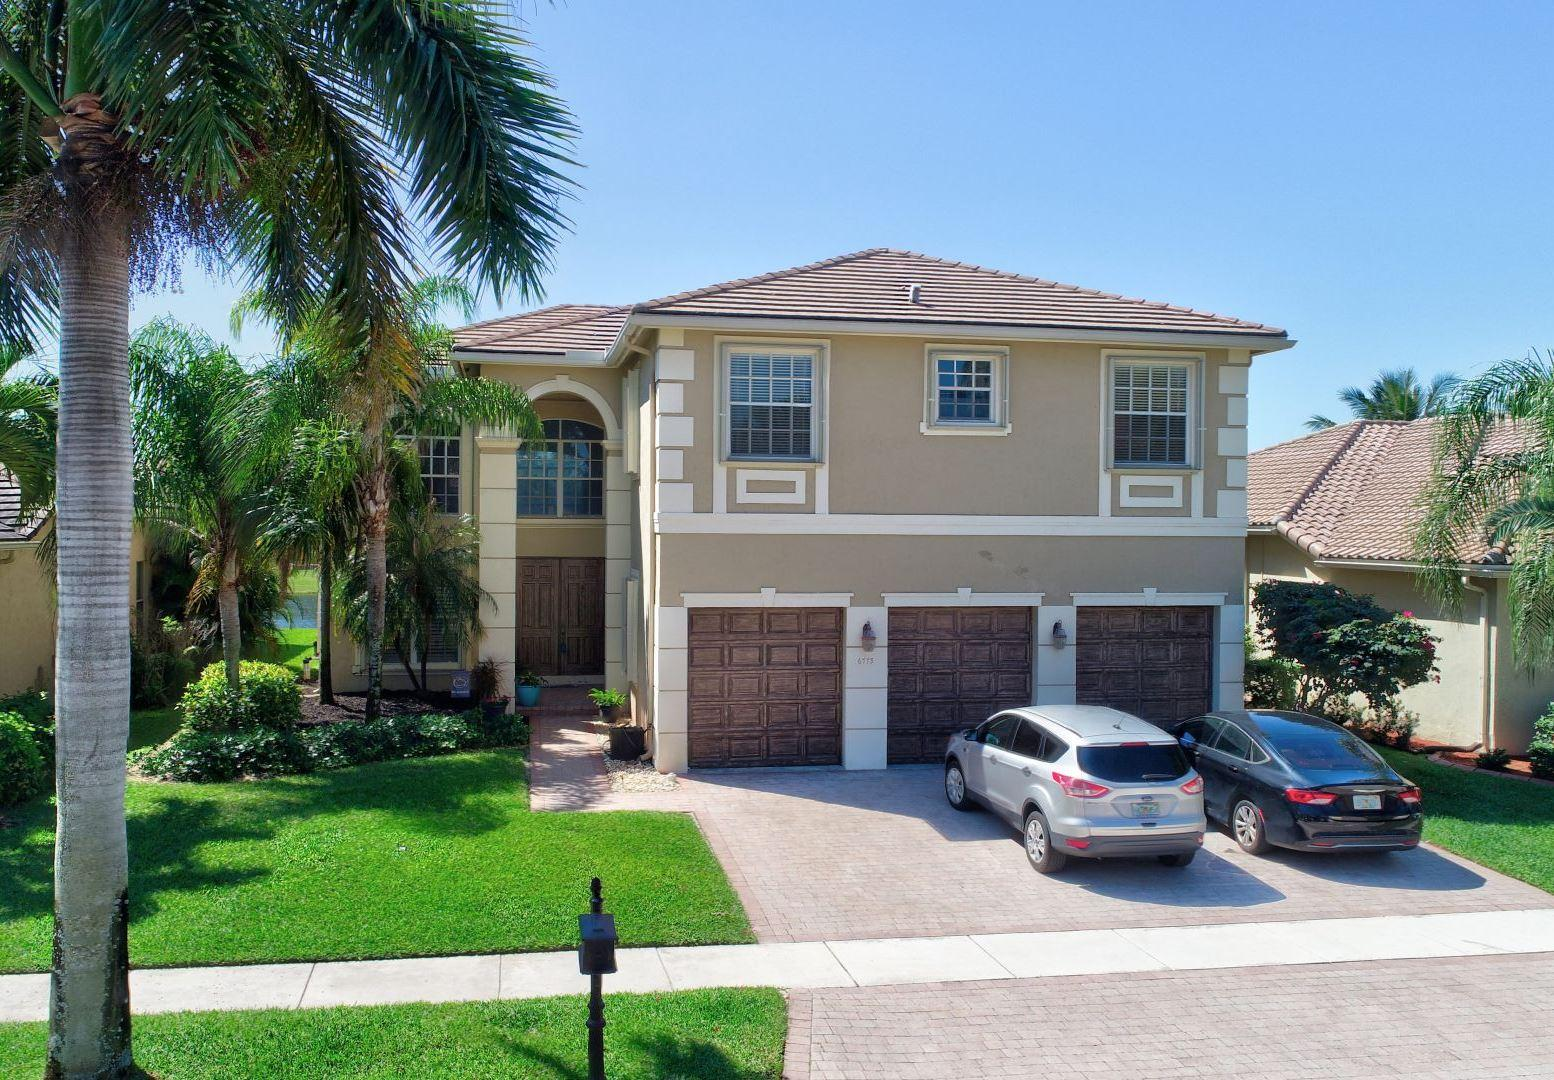 Home for sale in Jouurneys End Lake Worth Florida